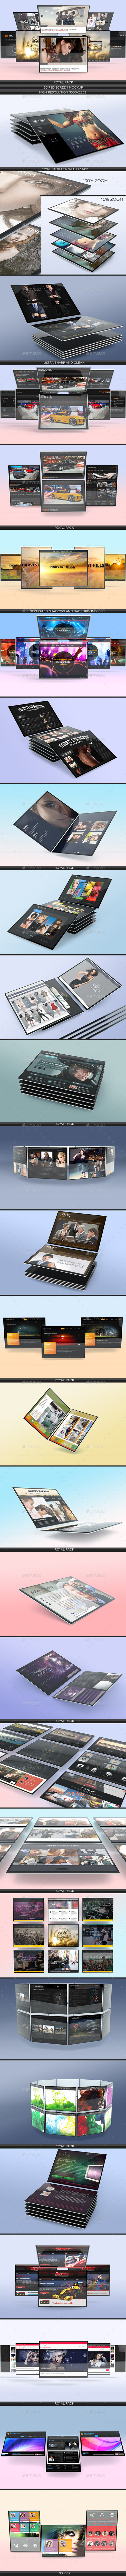 Screen Mockup Pack - Displays Product Mock-Ups